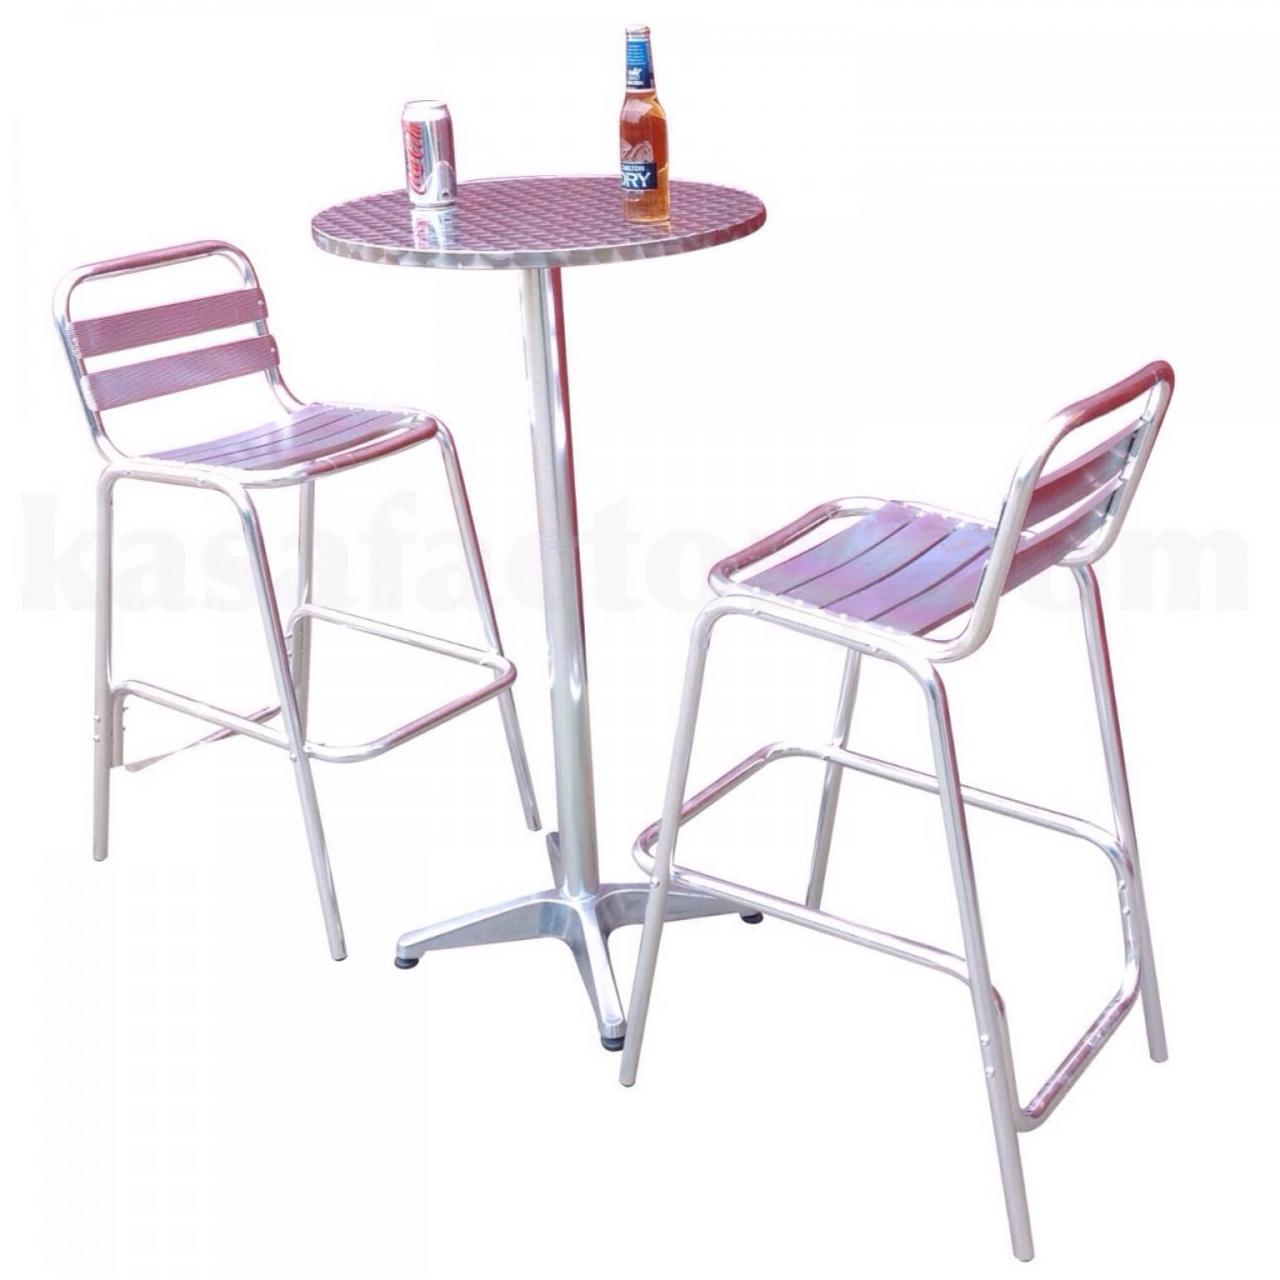 High bar chair KASA aluminium bar table